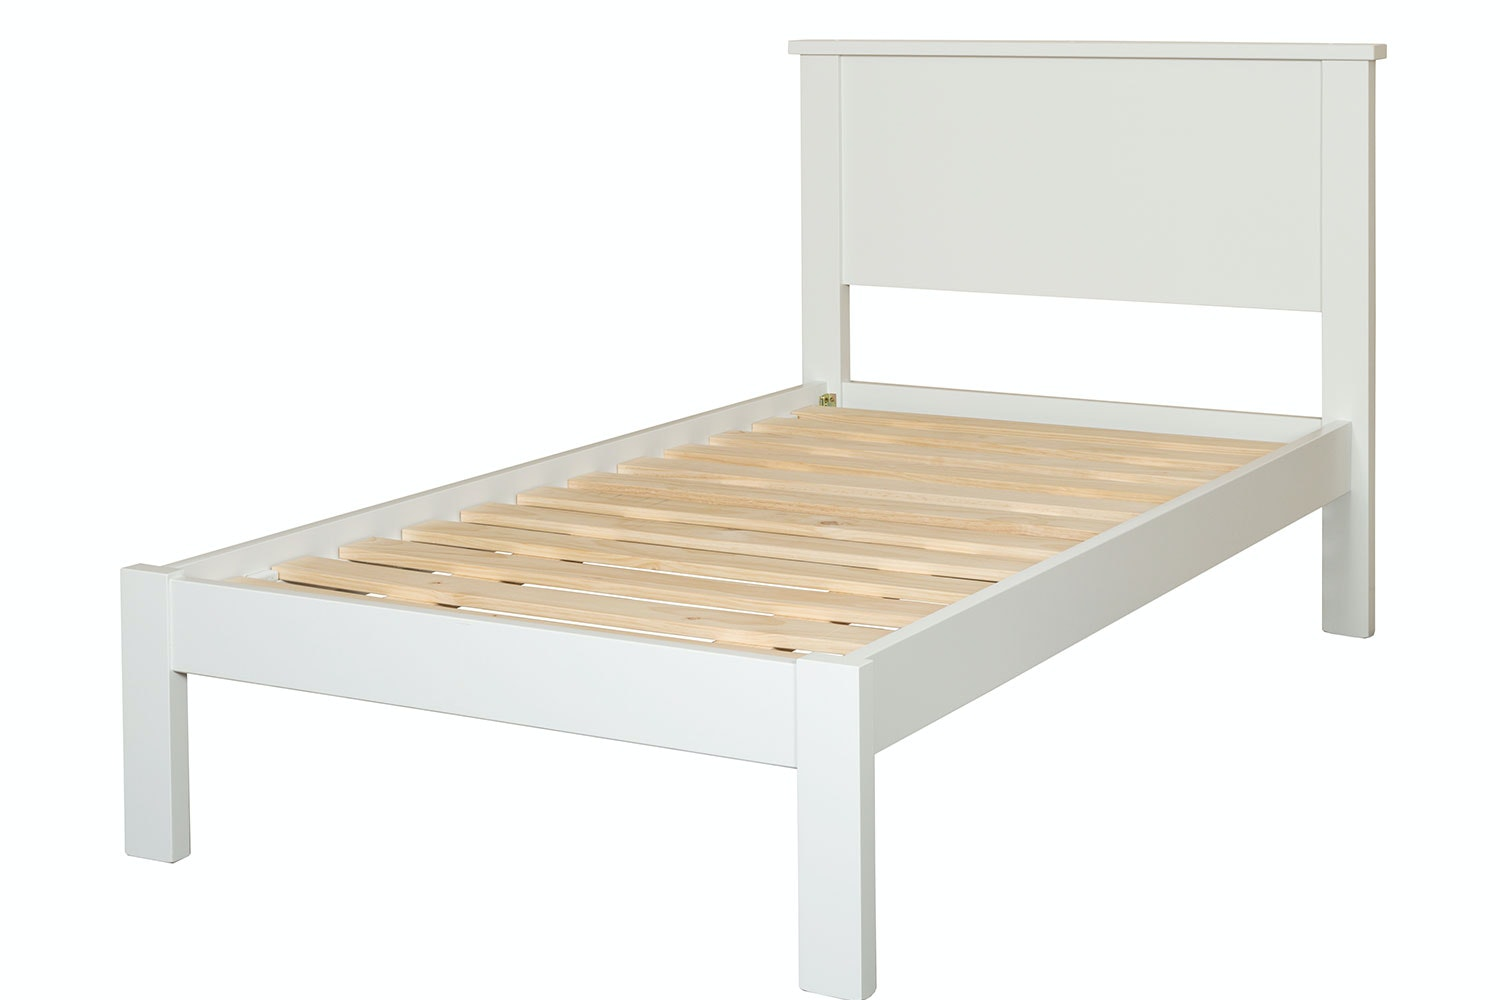 Granville Single Panelled Bed Frame by Coastwood Furniture